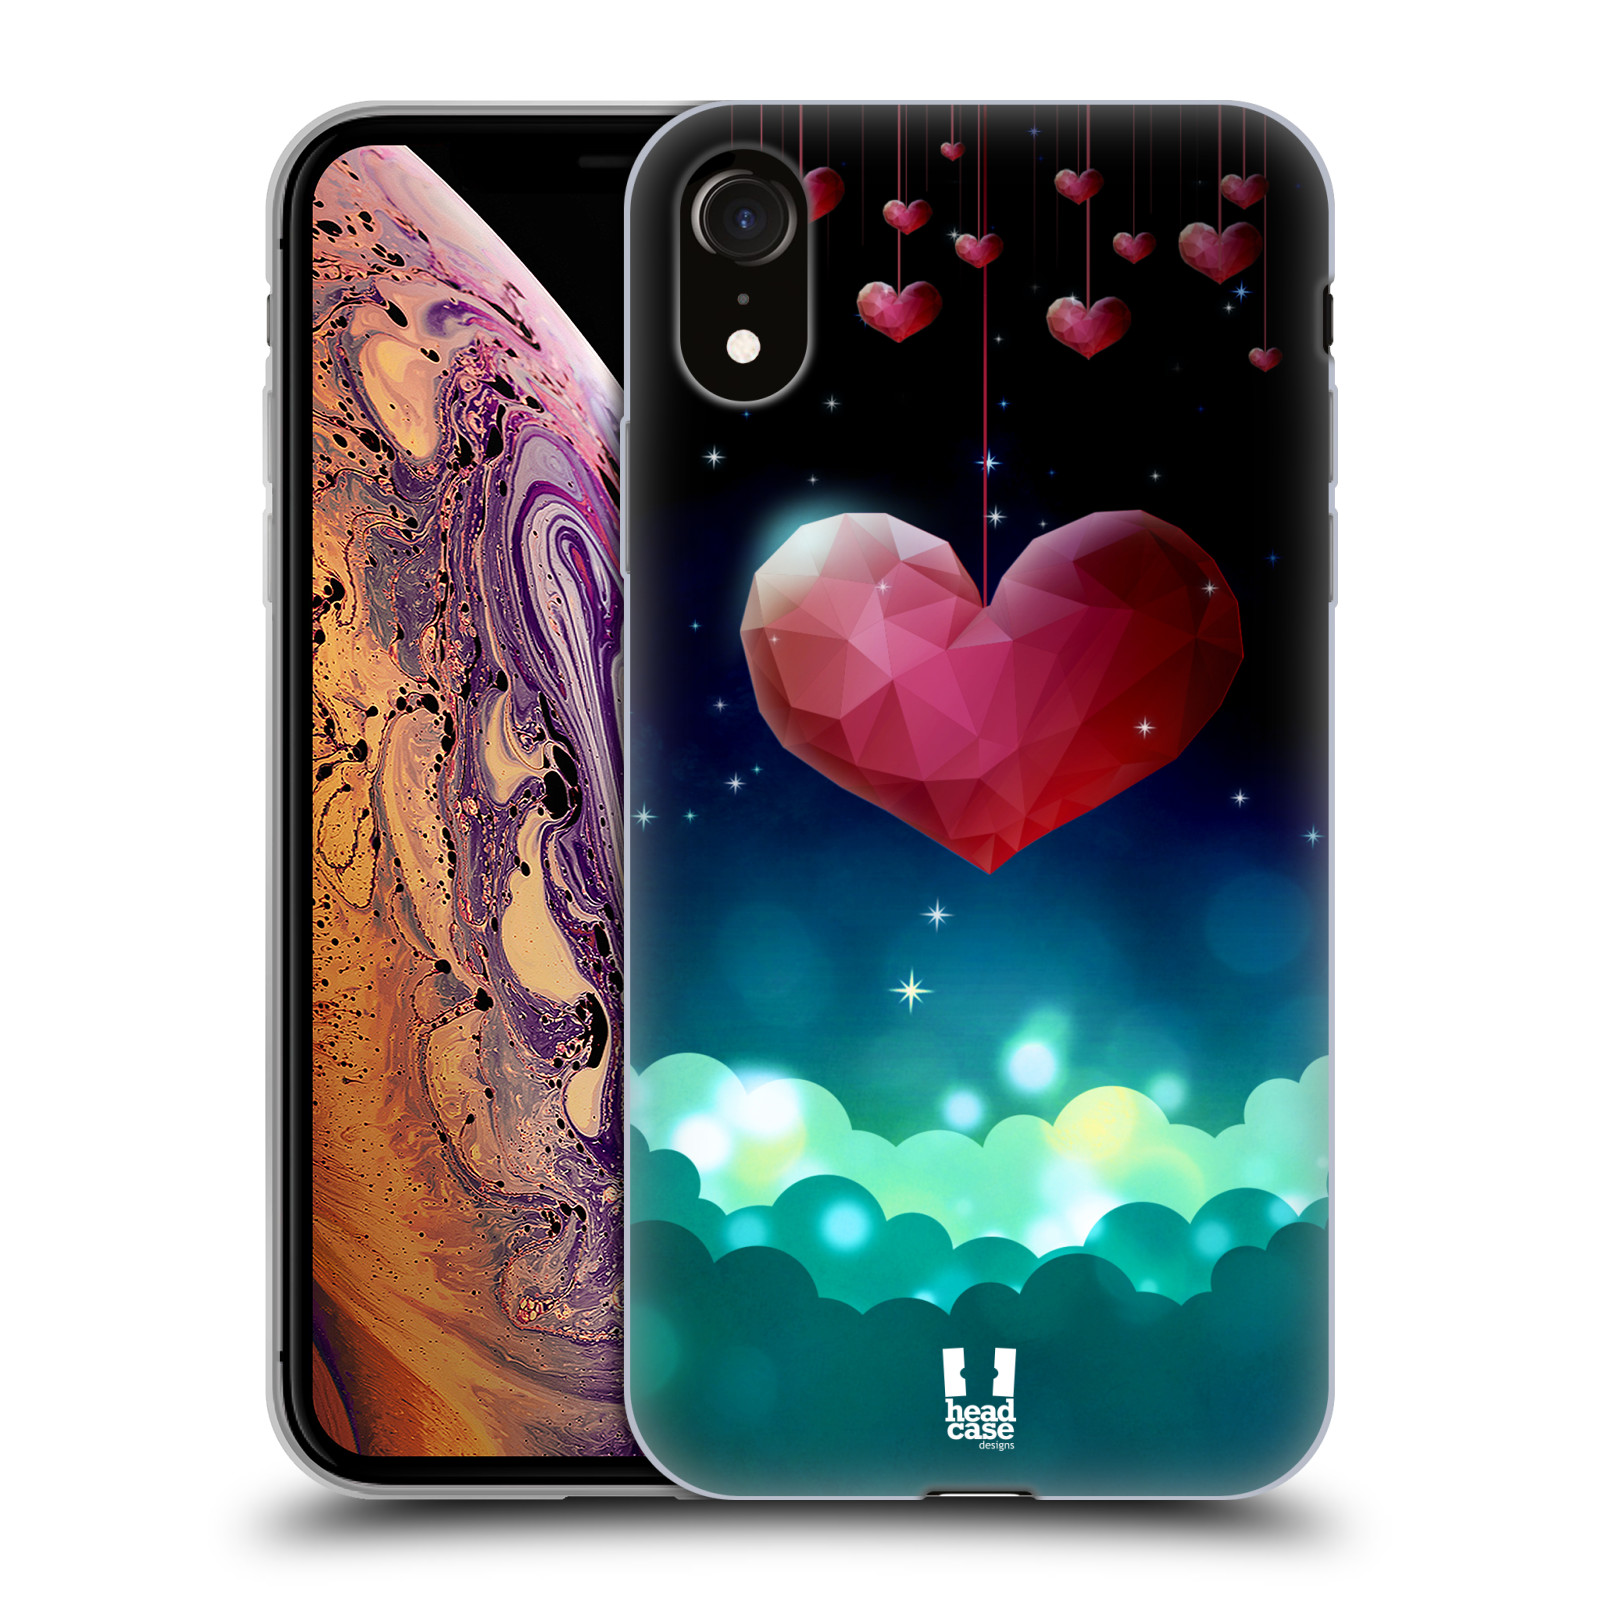 Silikonové pouzdro na mobil Apple iPhone XR - Head Case - LOVE AFFLOAT SRDCE